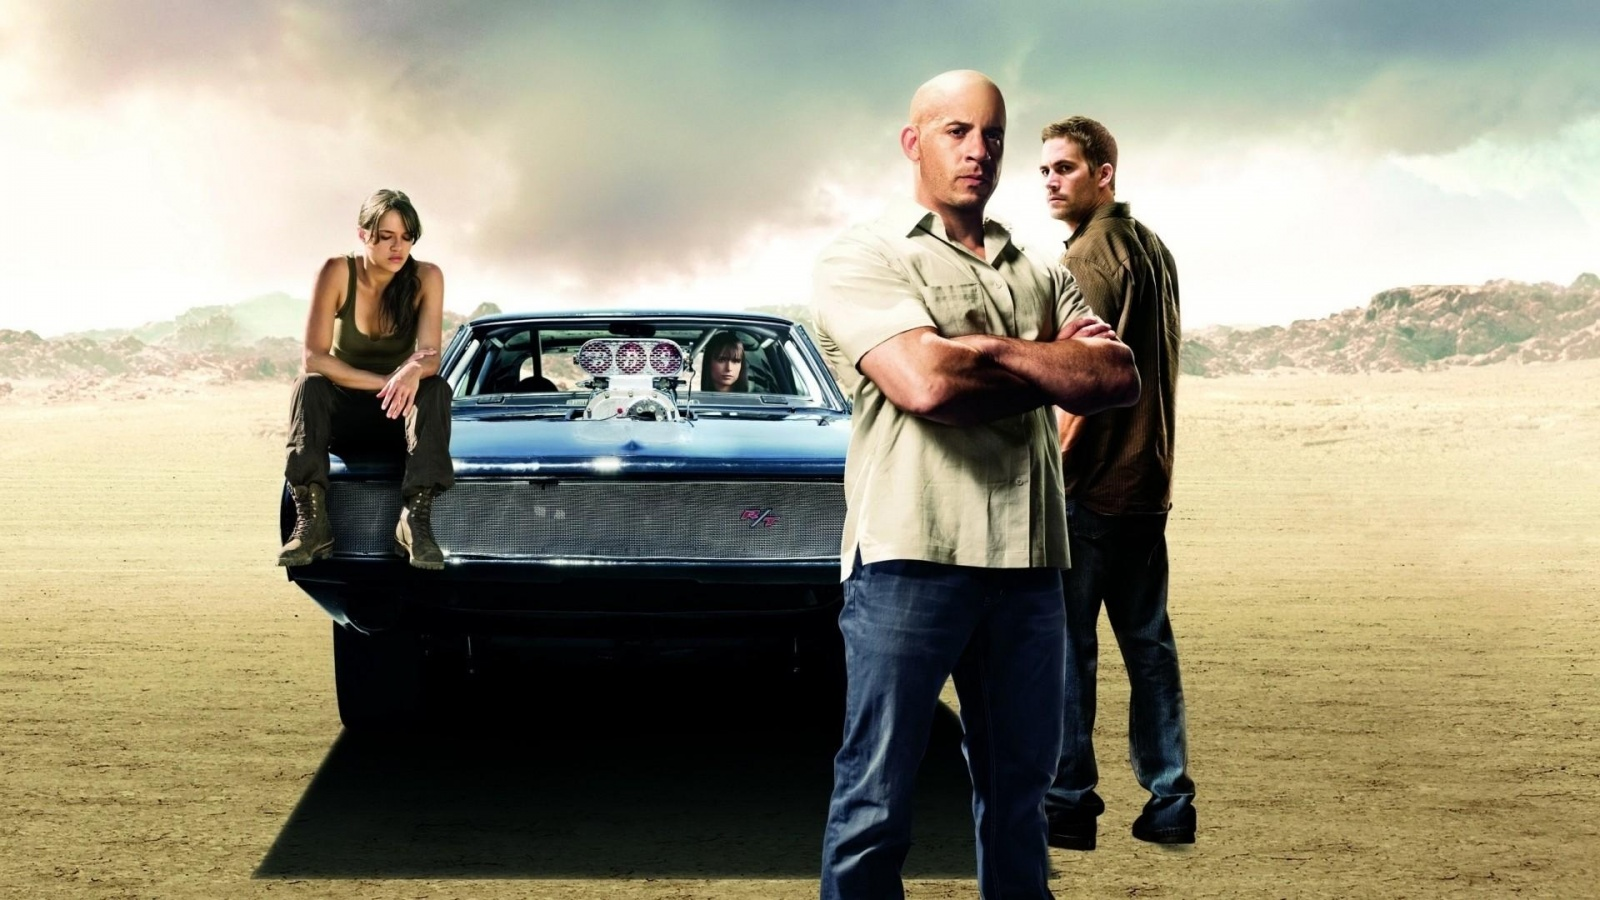 fast and furious 6 full movie download in hindi hd